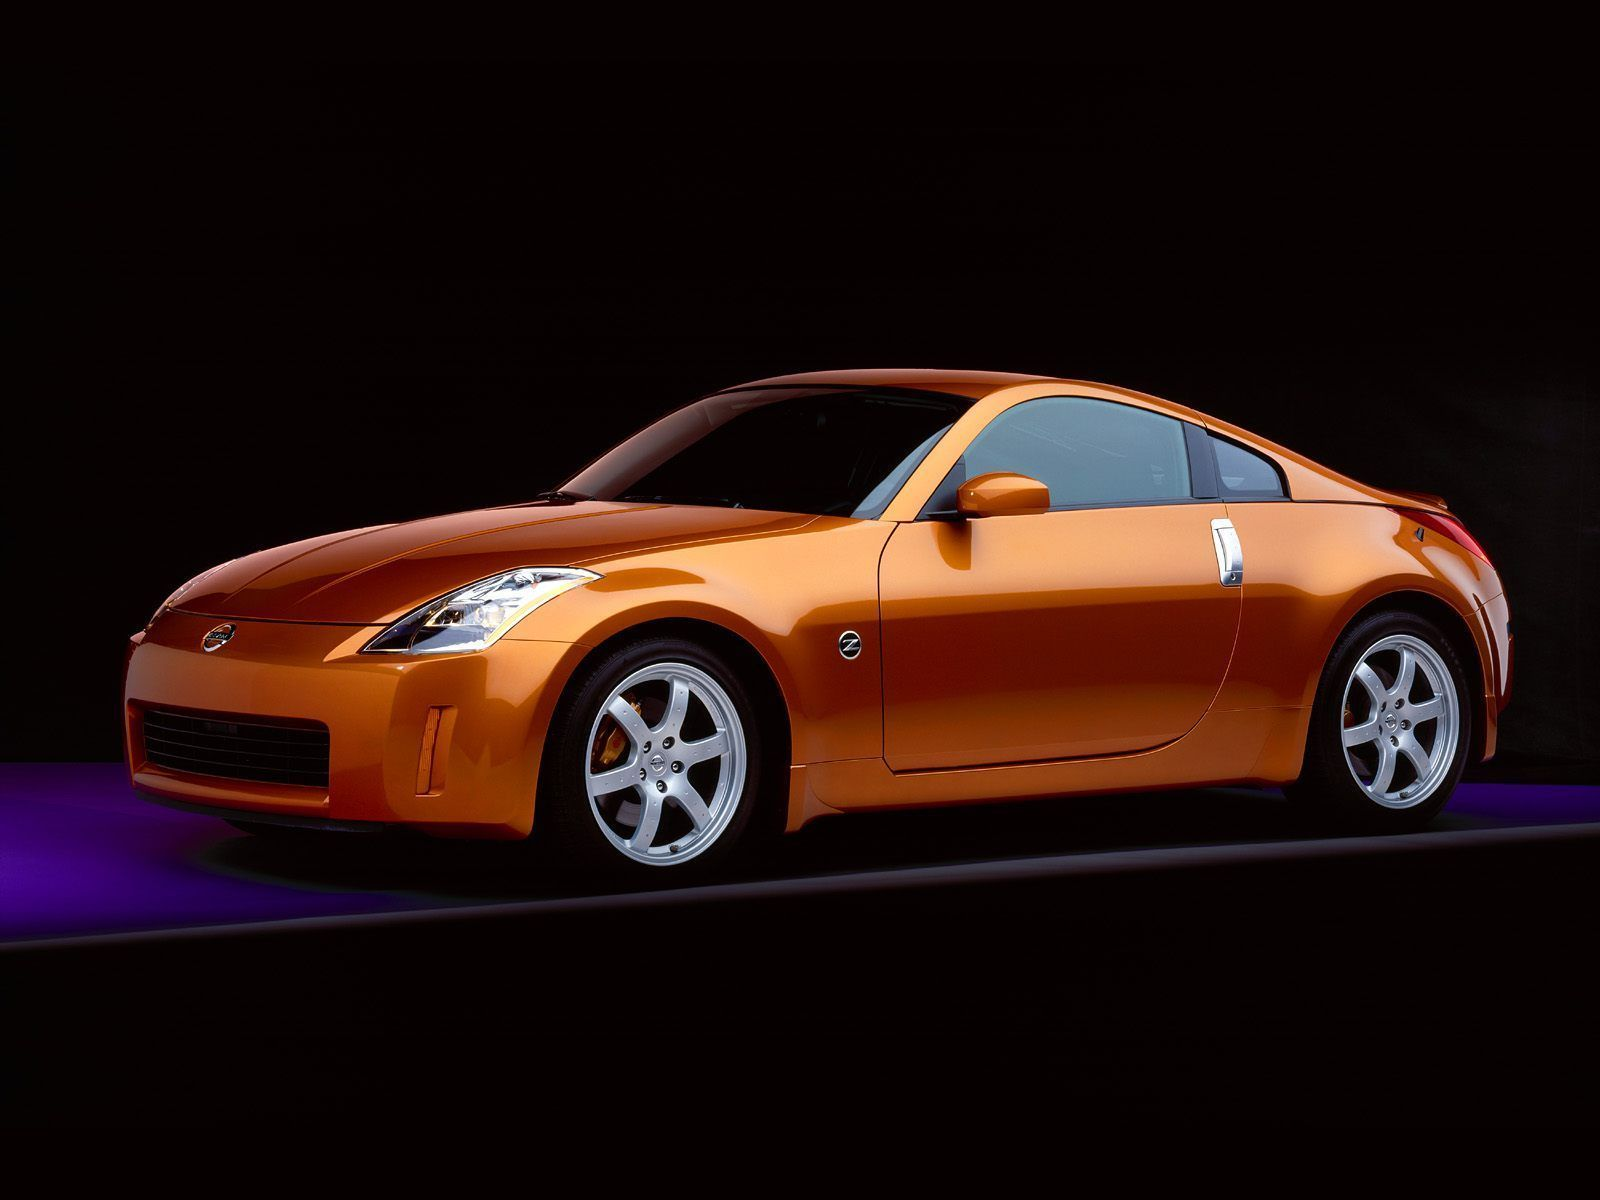 Exotic Hd Car Wallpapers Belle Voiture Page 4